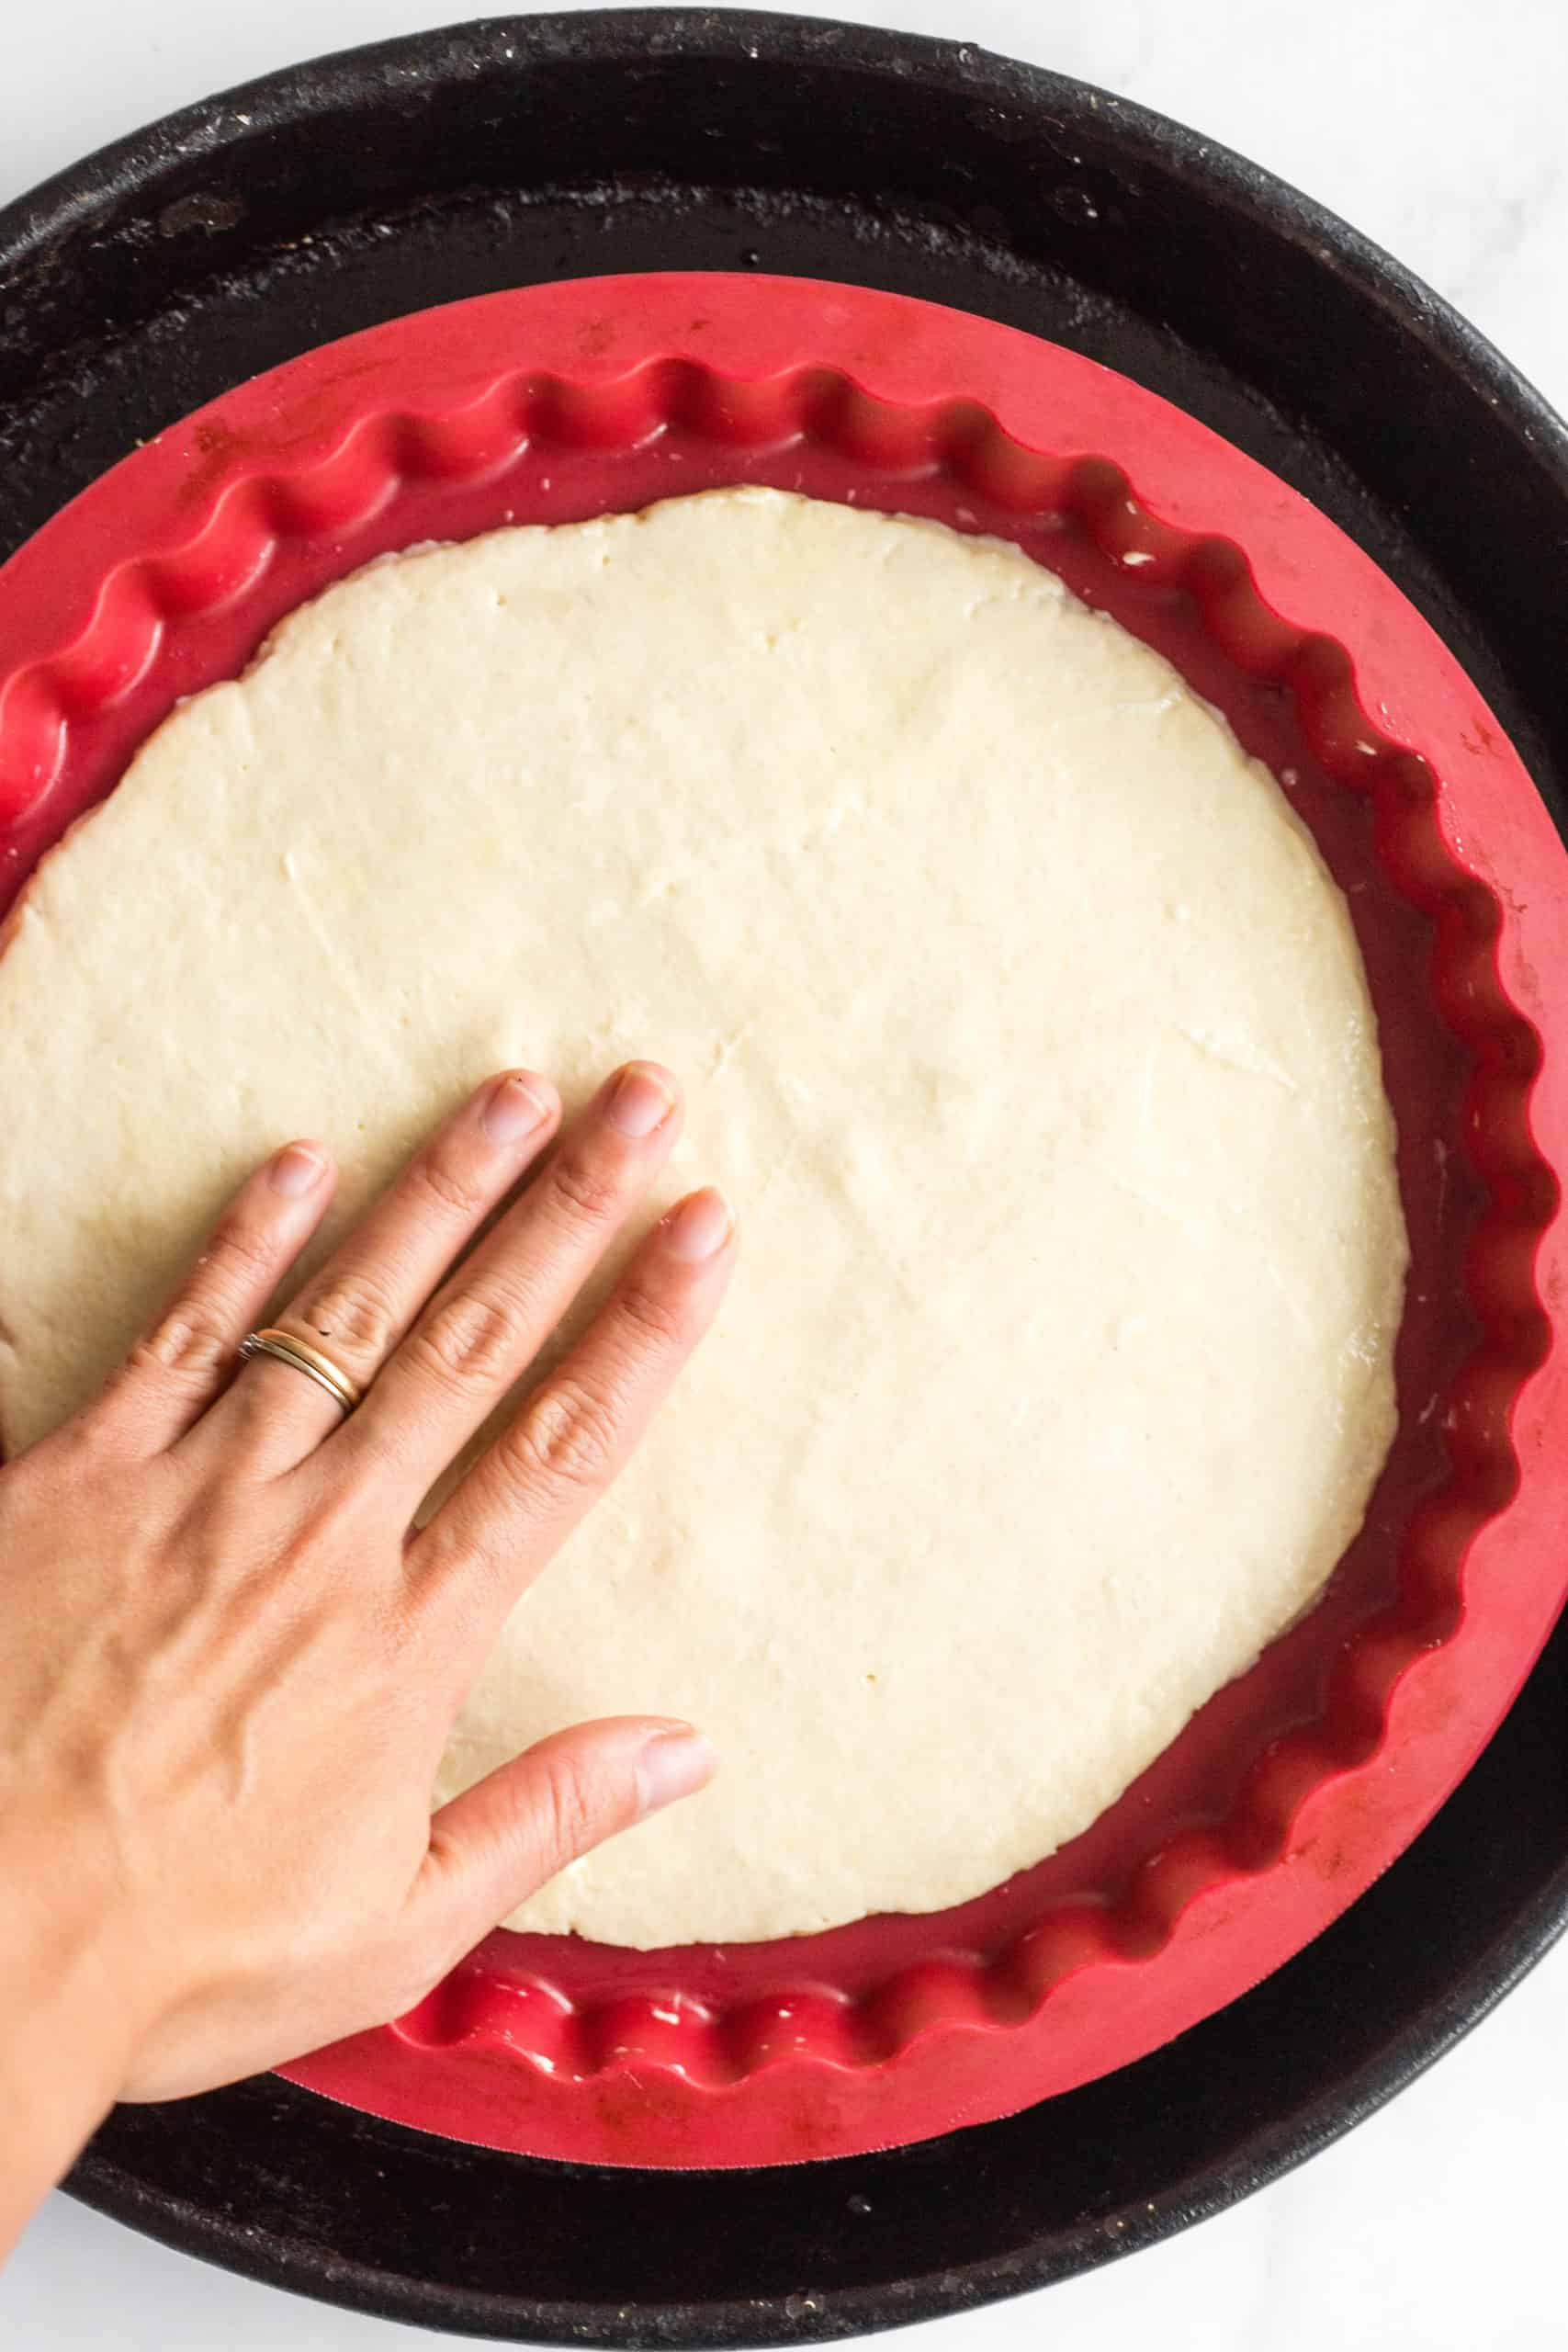 Spreading the gluten-free pizza dough on a silpat-lined pizza pan.